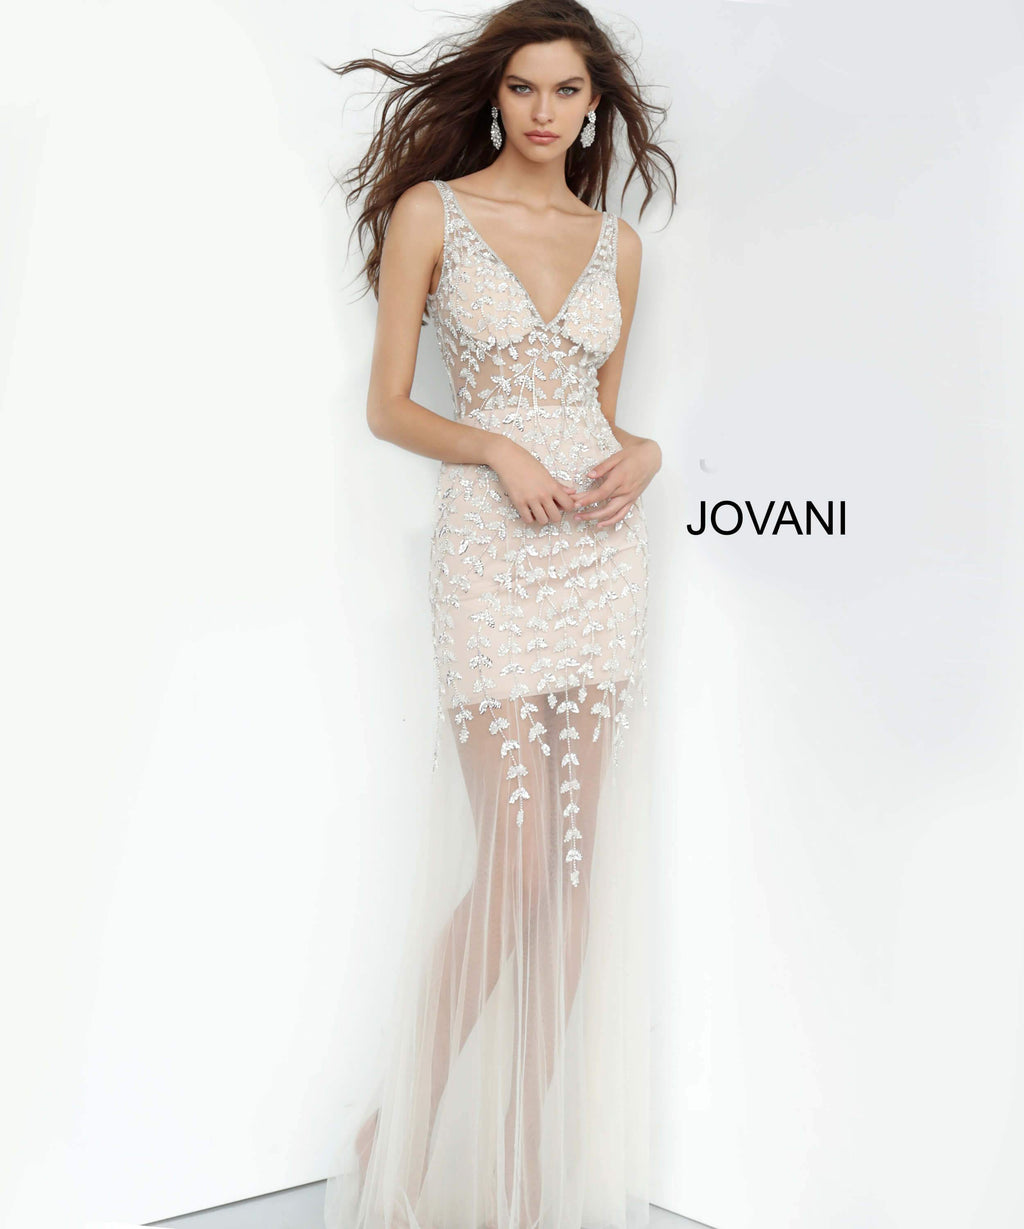 JOVANI 3959 Off White/Nude Beaded V-Neck Evening Dress - CYC Boutique